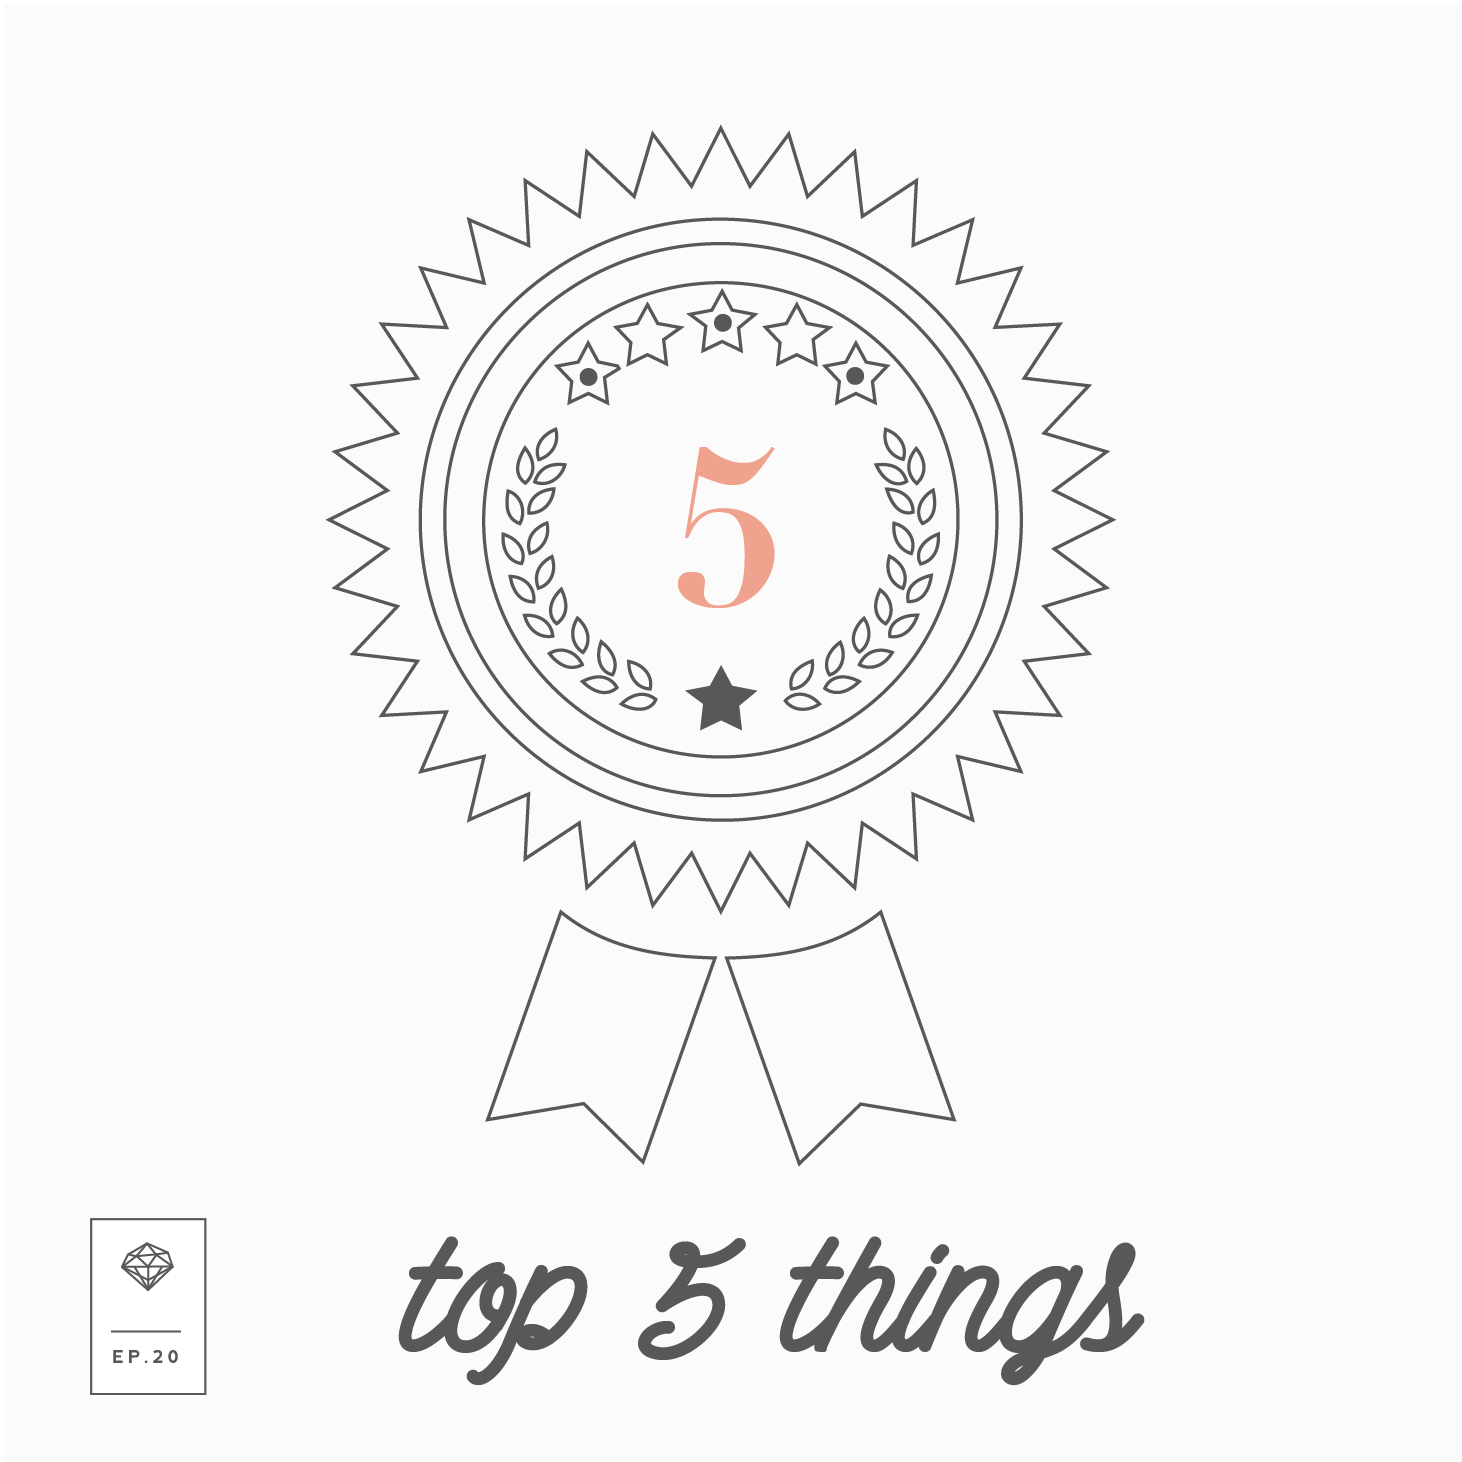 Engaged Episode Covers 03 - top 5 things-11.png